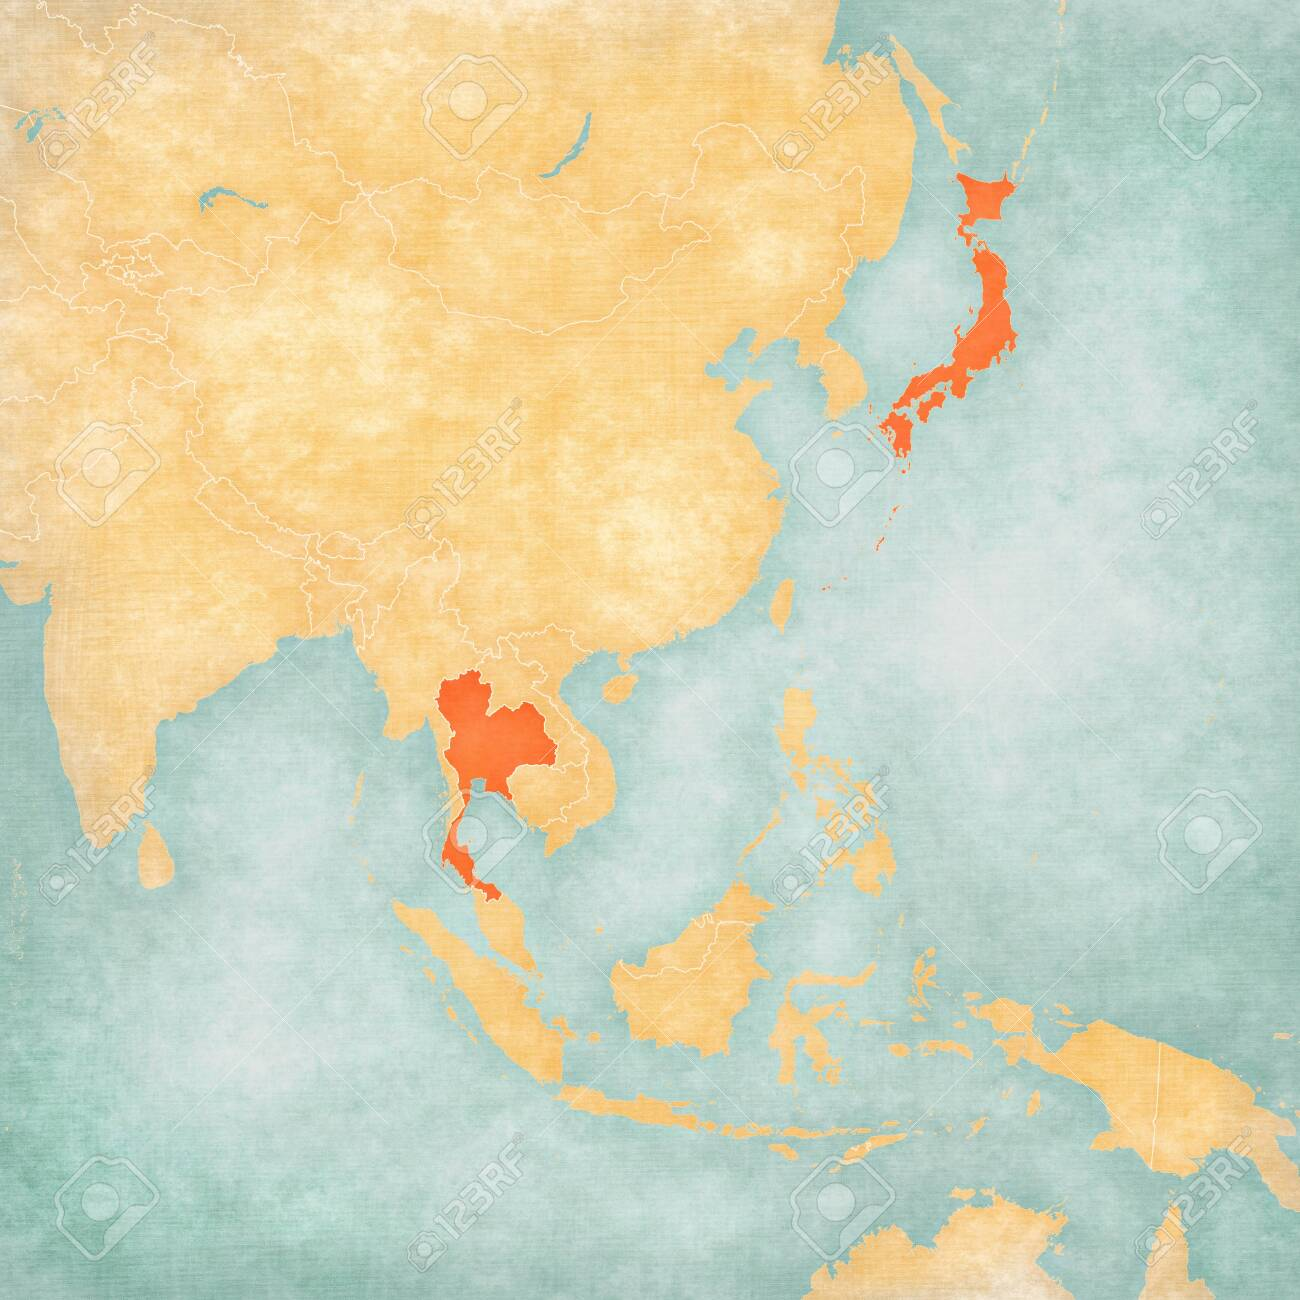 Map Of East And Southeast Asia.Thailand And Japan On The Map Of East And Southeast Asia In Soft